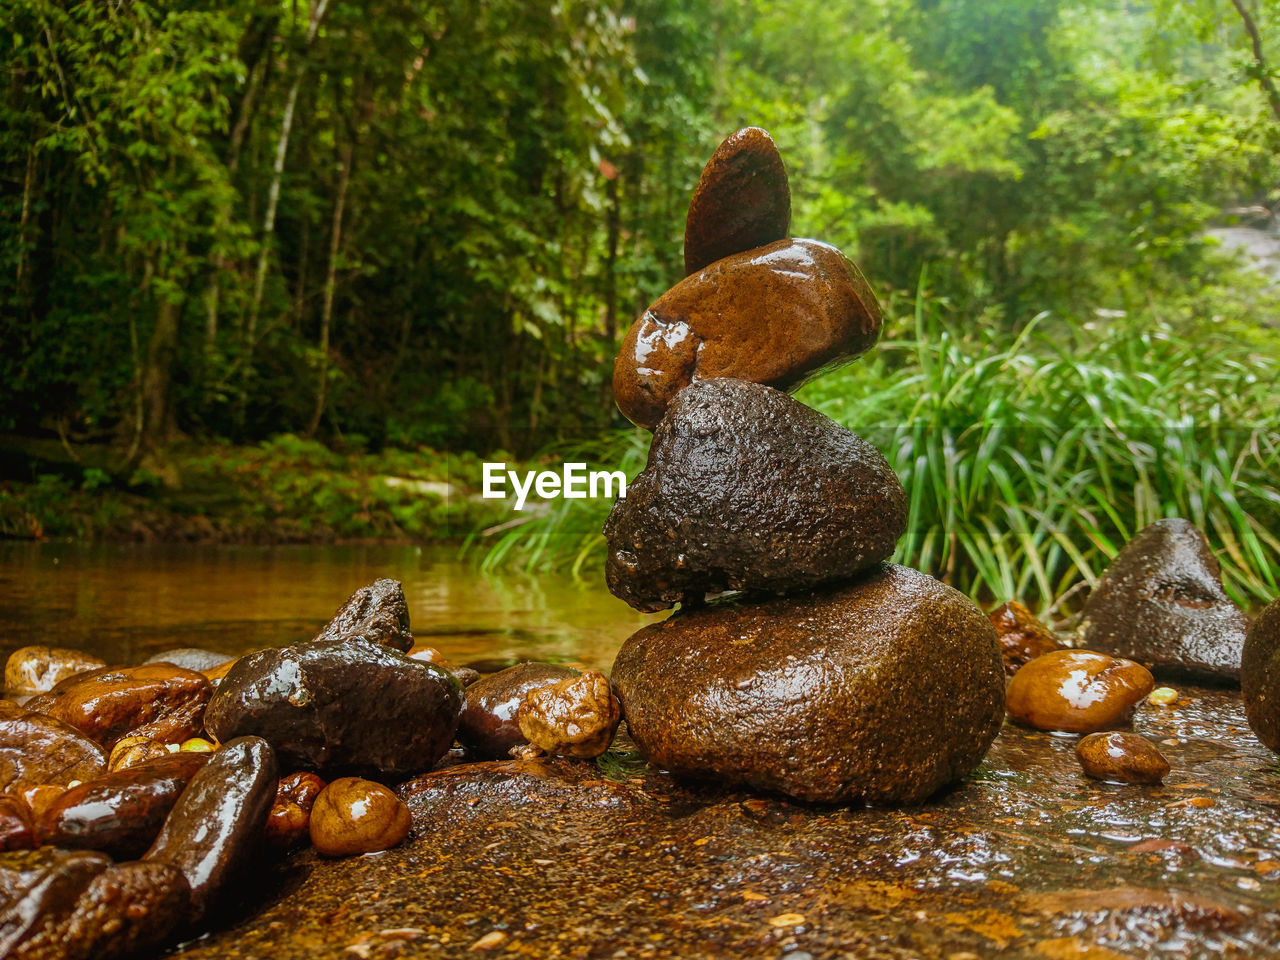 tree, water, no people, solid, nature, forest, rock, plant, day, stone - object, rock - object, zen-like, food, food and drink, balance, focus on foreground, outdoors, tranquility, stack, pebble